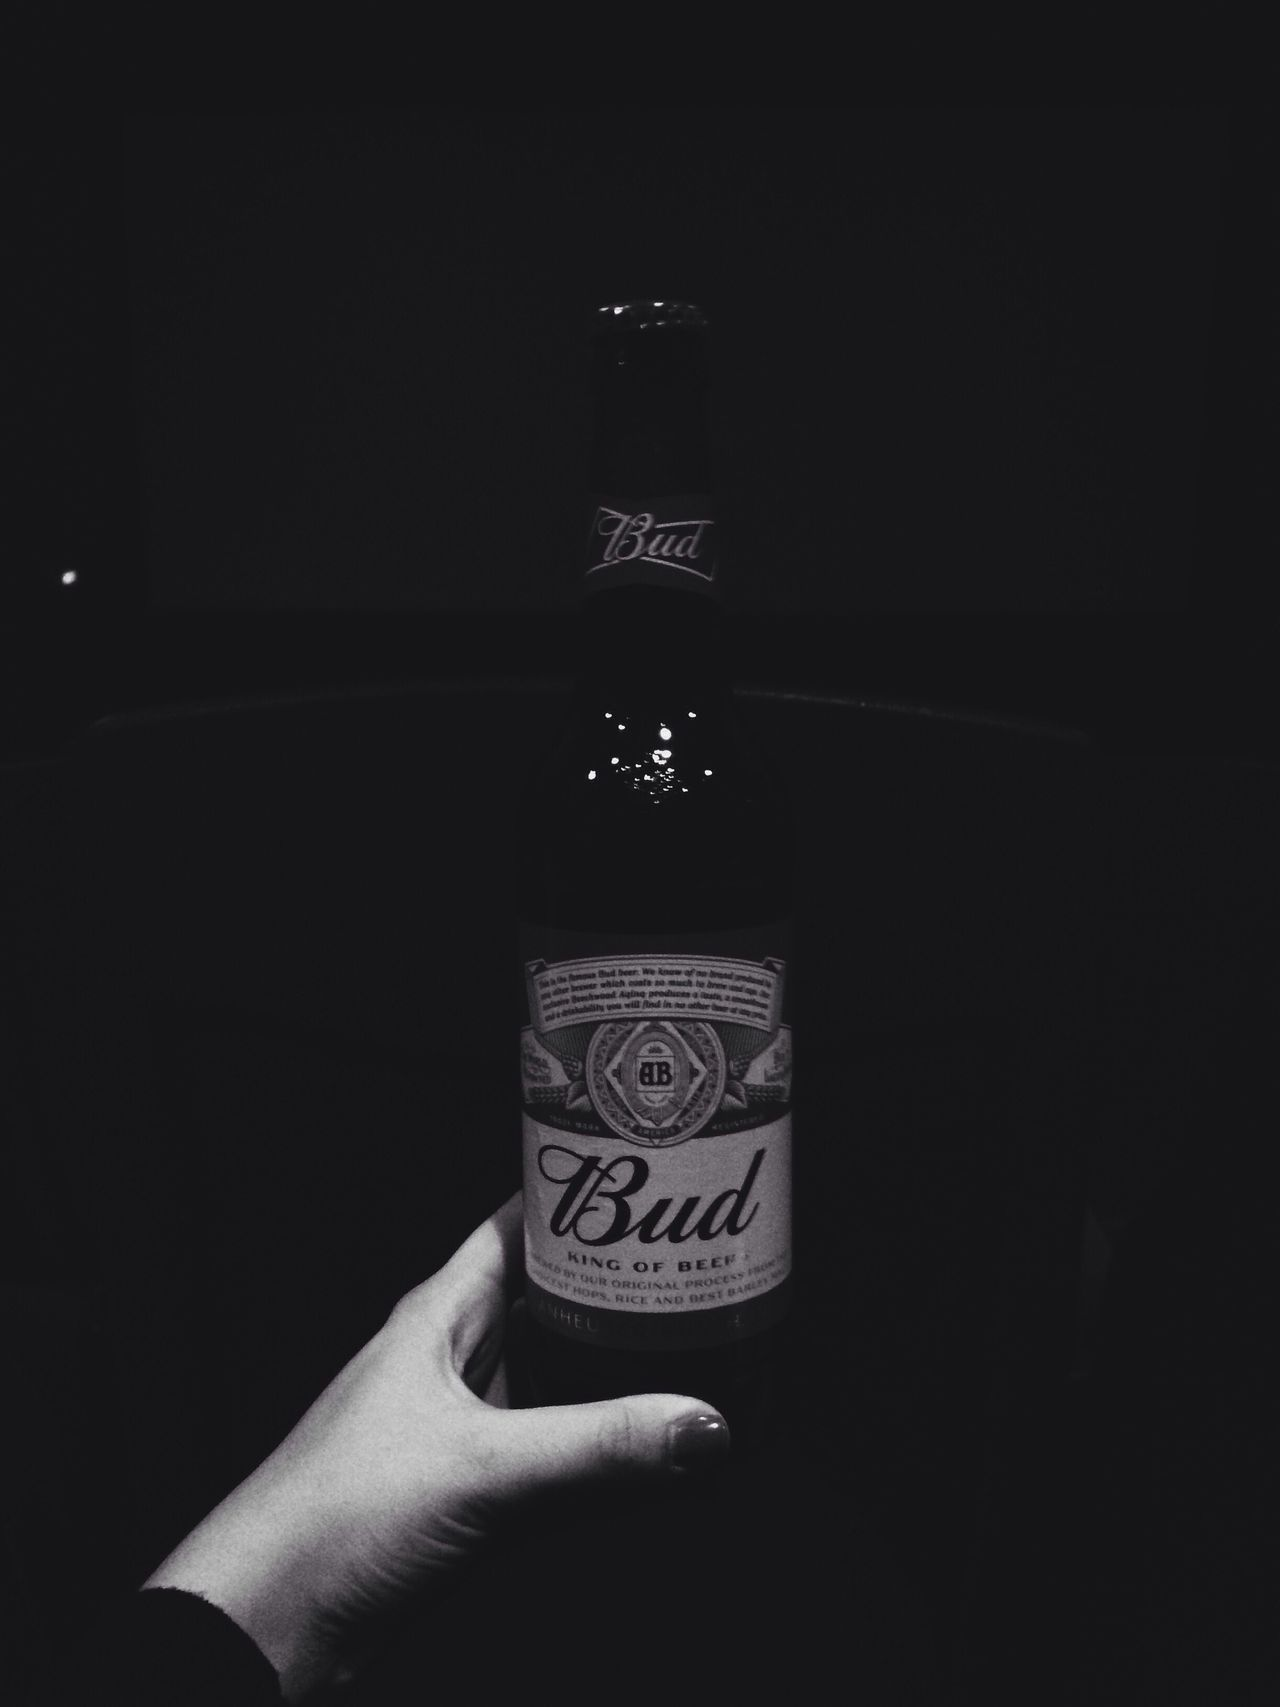 Beer Cinema Movie Time Nice Day Relaxing Everyrhing Is Better With Bud Enjoying Life Advertisement Promo Bud